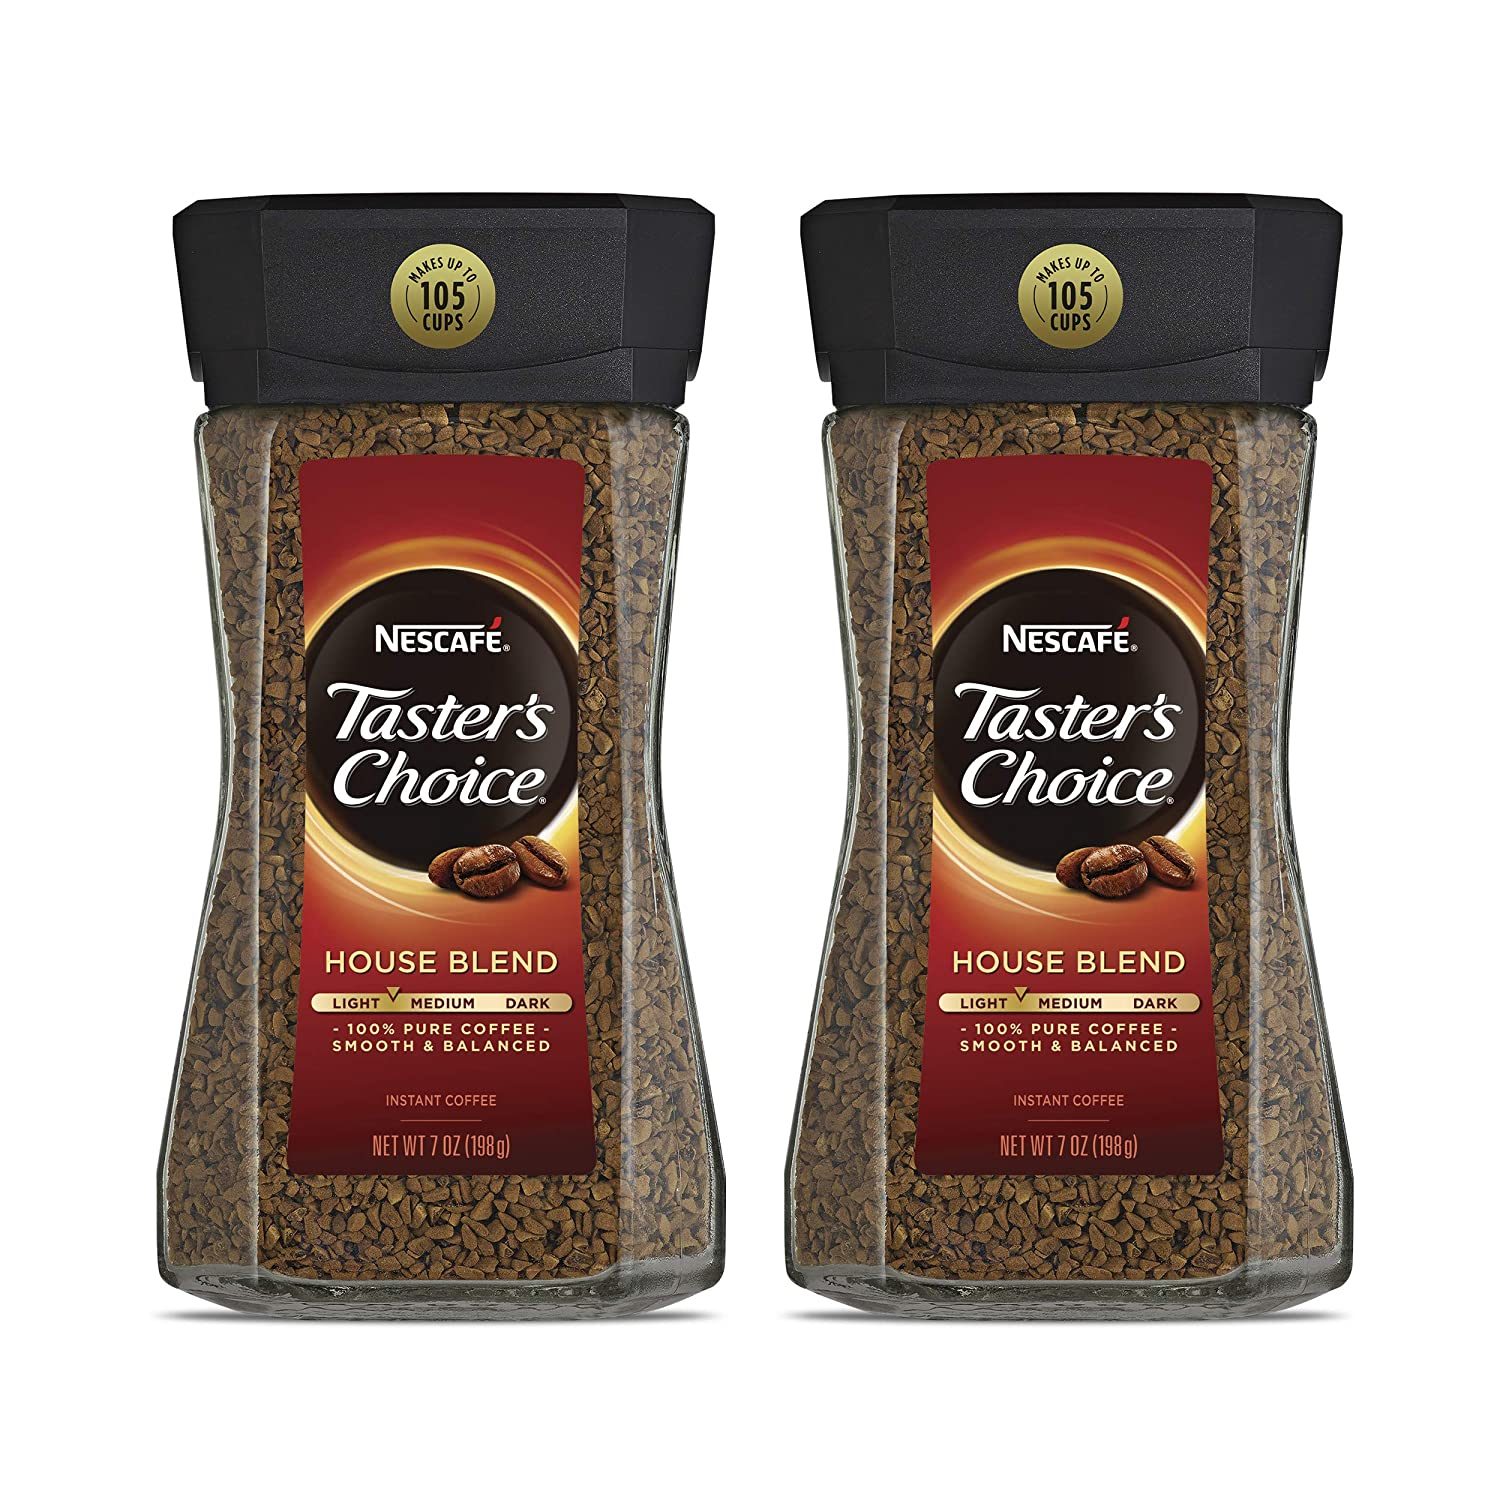 Department store Nescafe Taster's Choice Super special price House Blend 7 Coffee Ounce Pac Instant